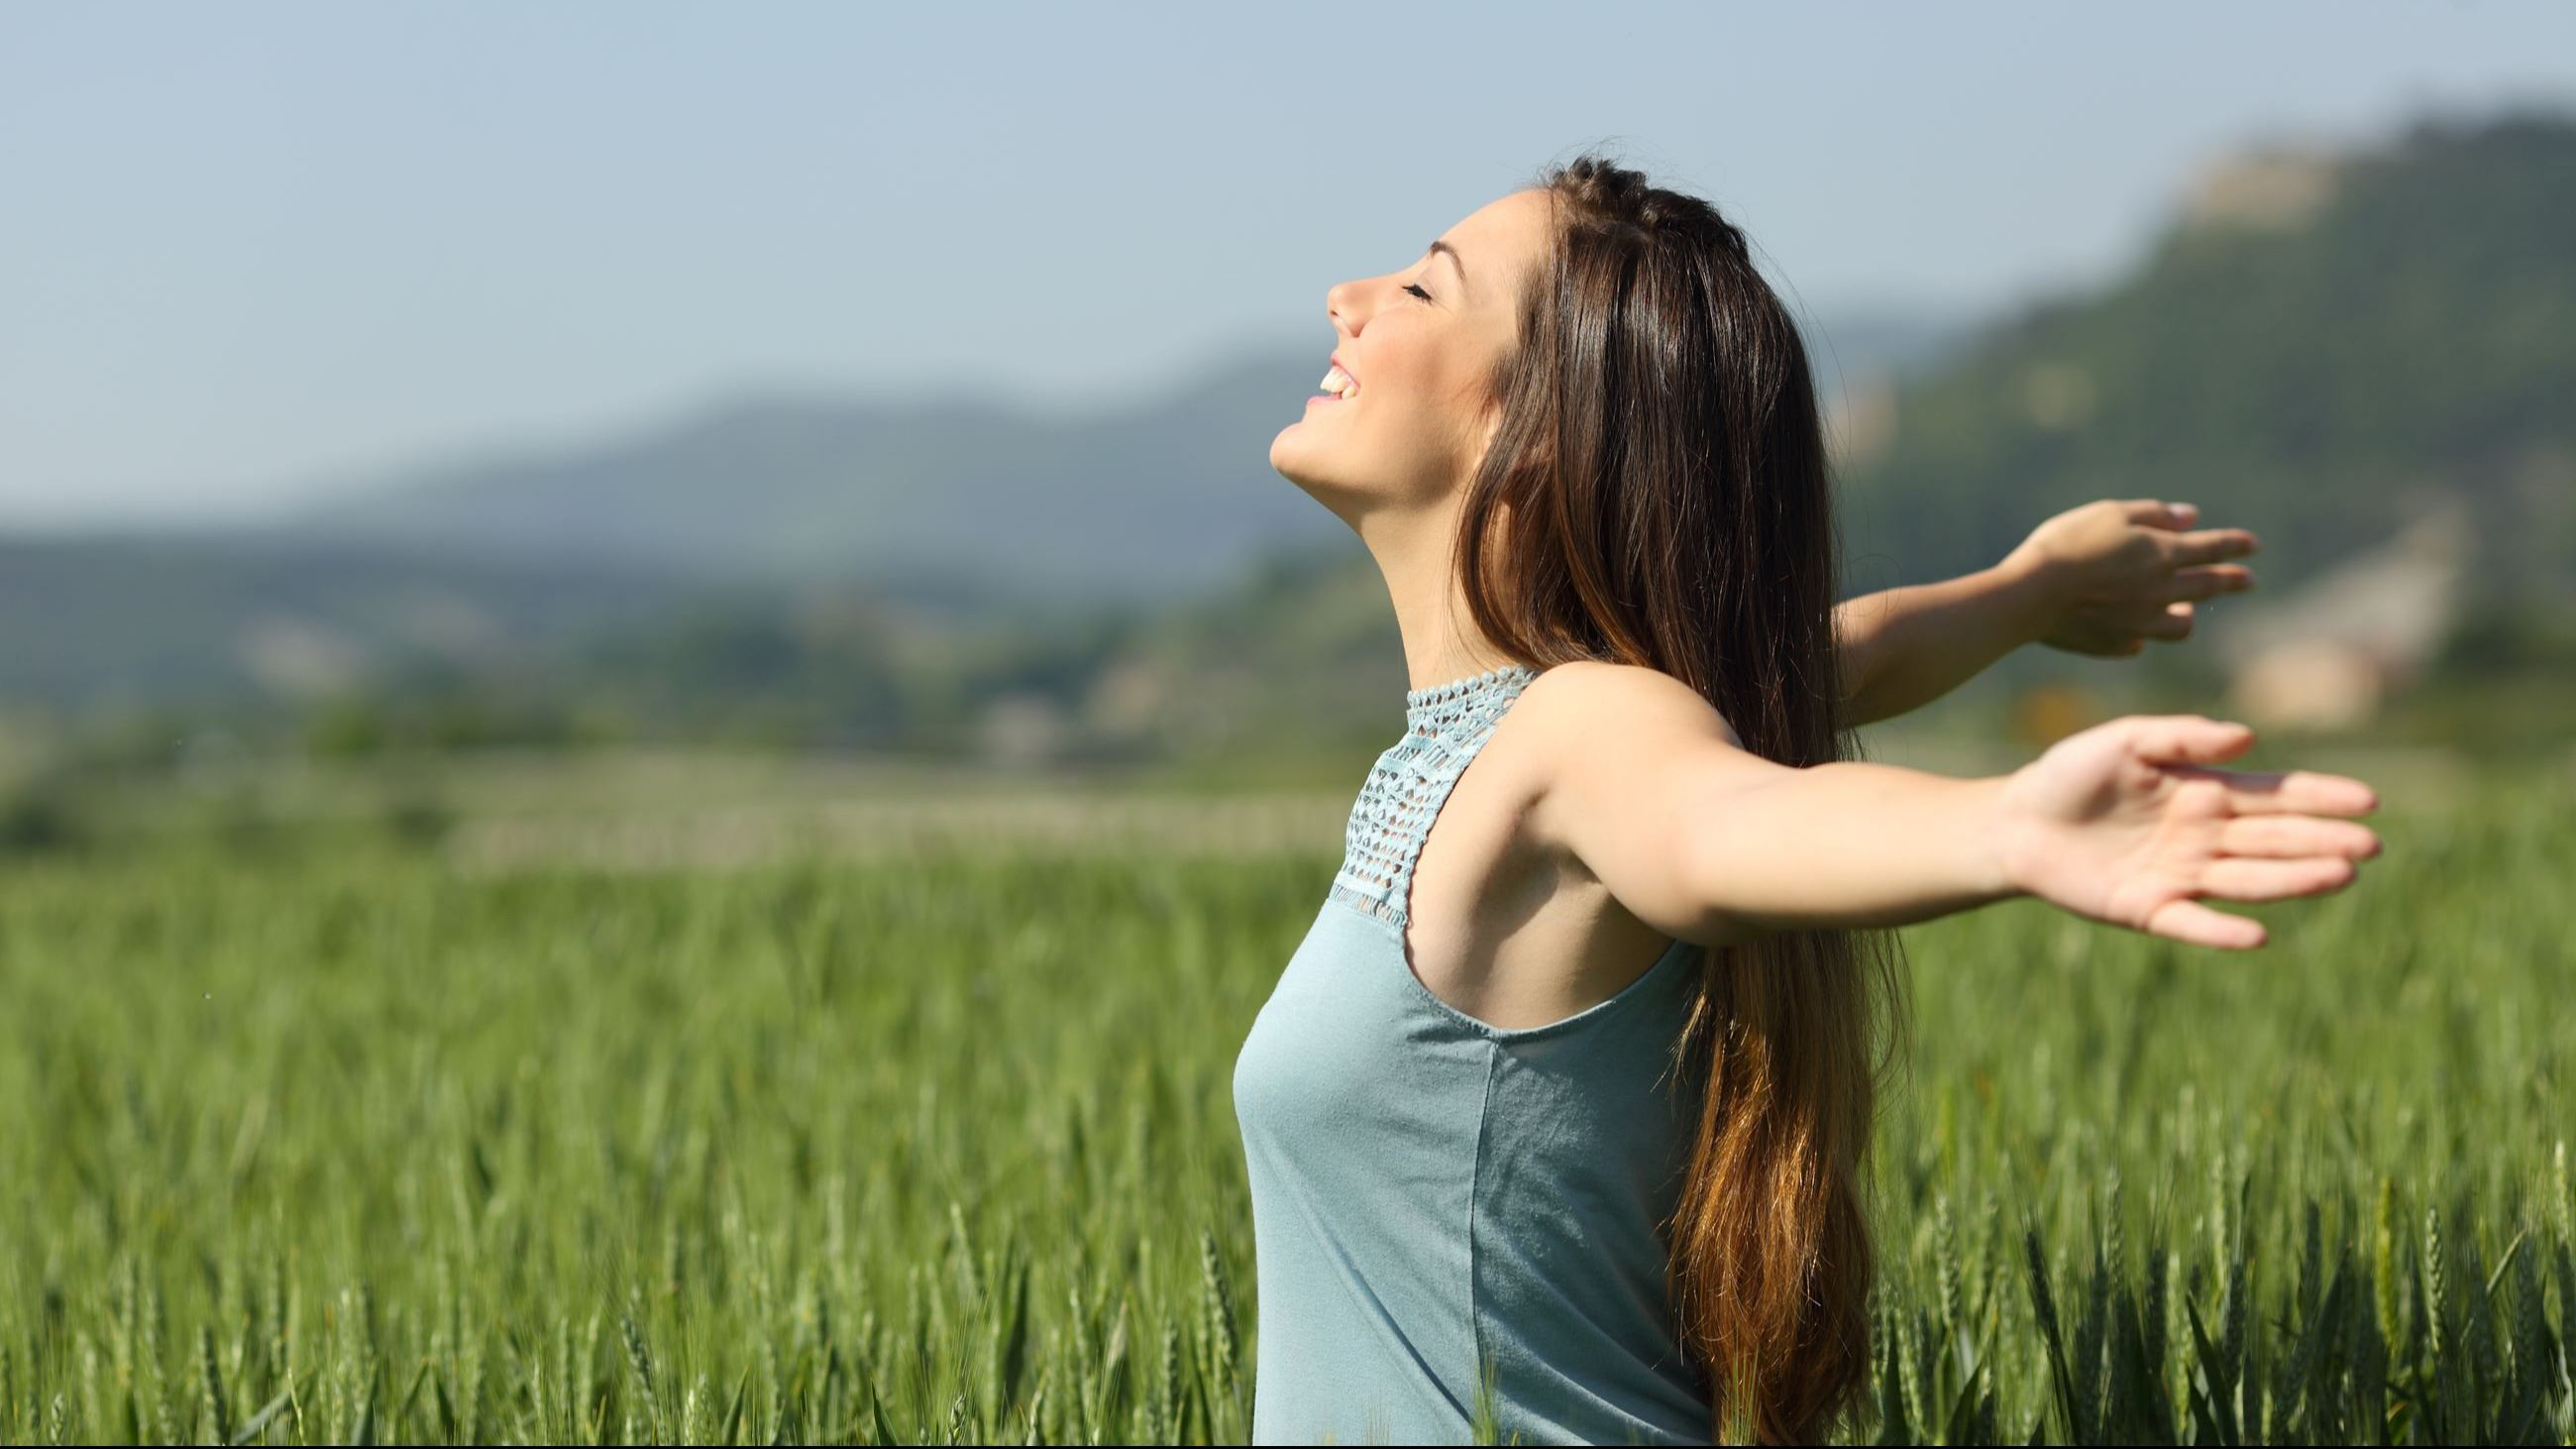 Happy woman breathing deeply fresh air in a field